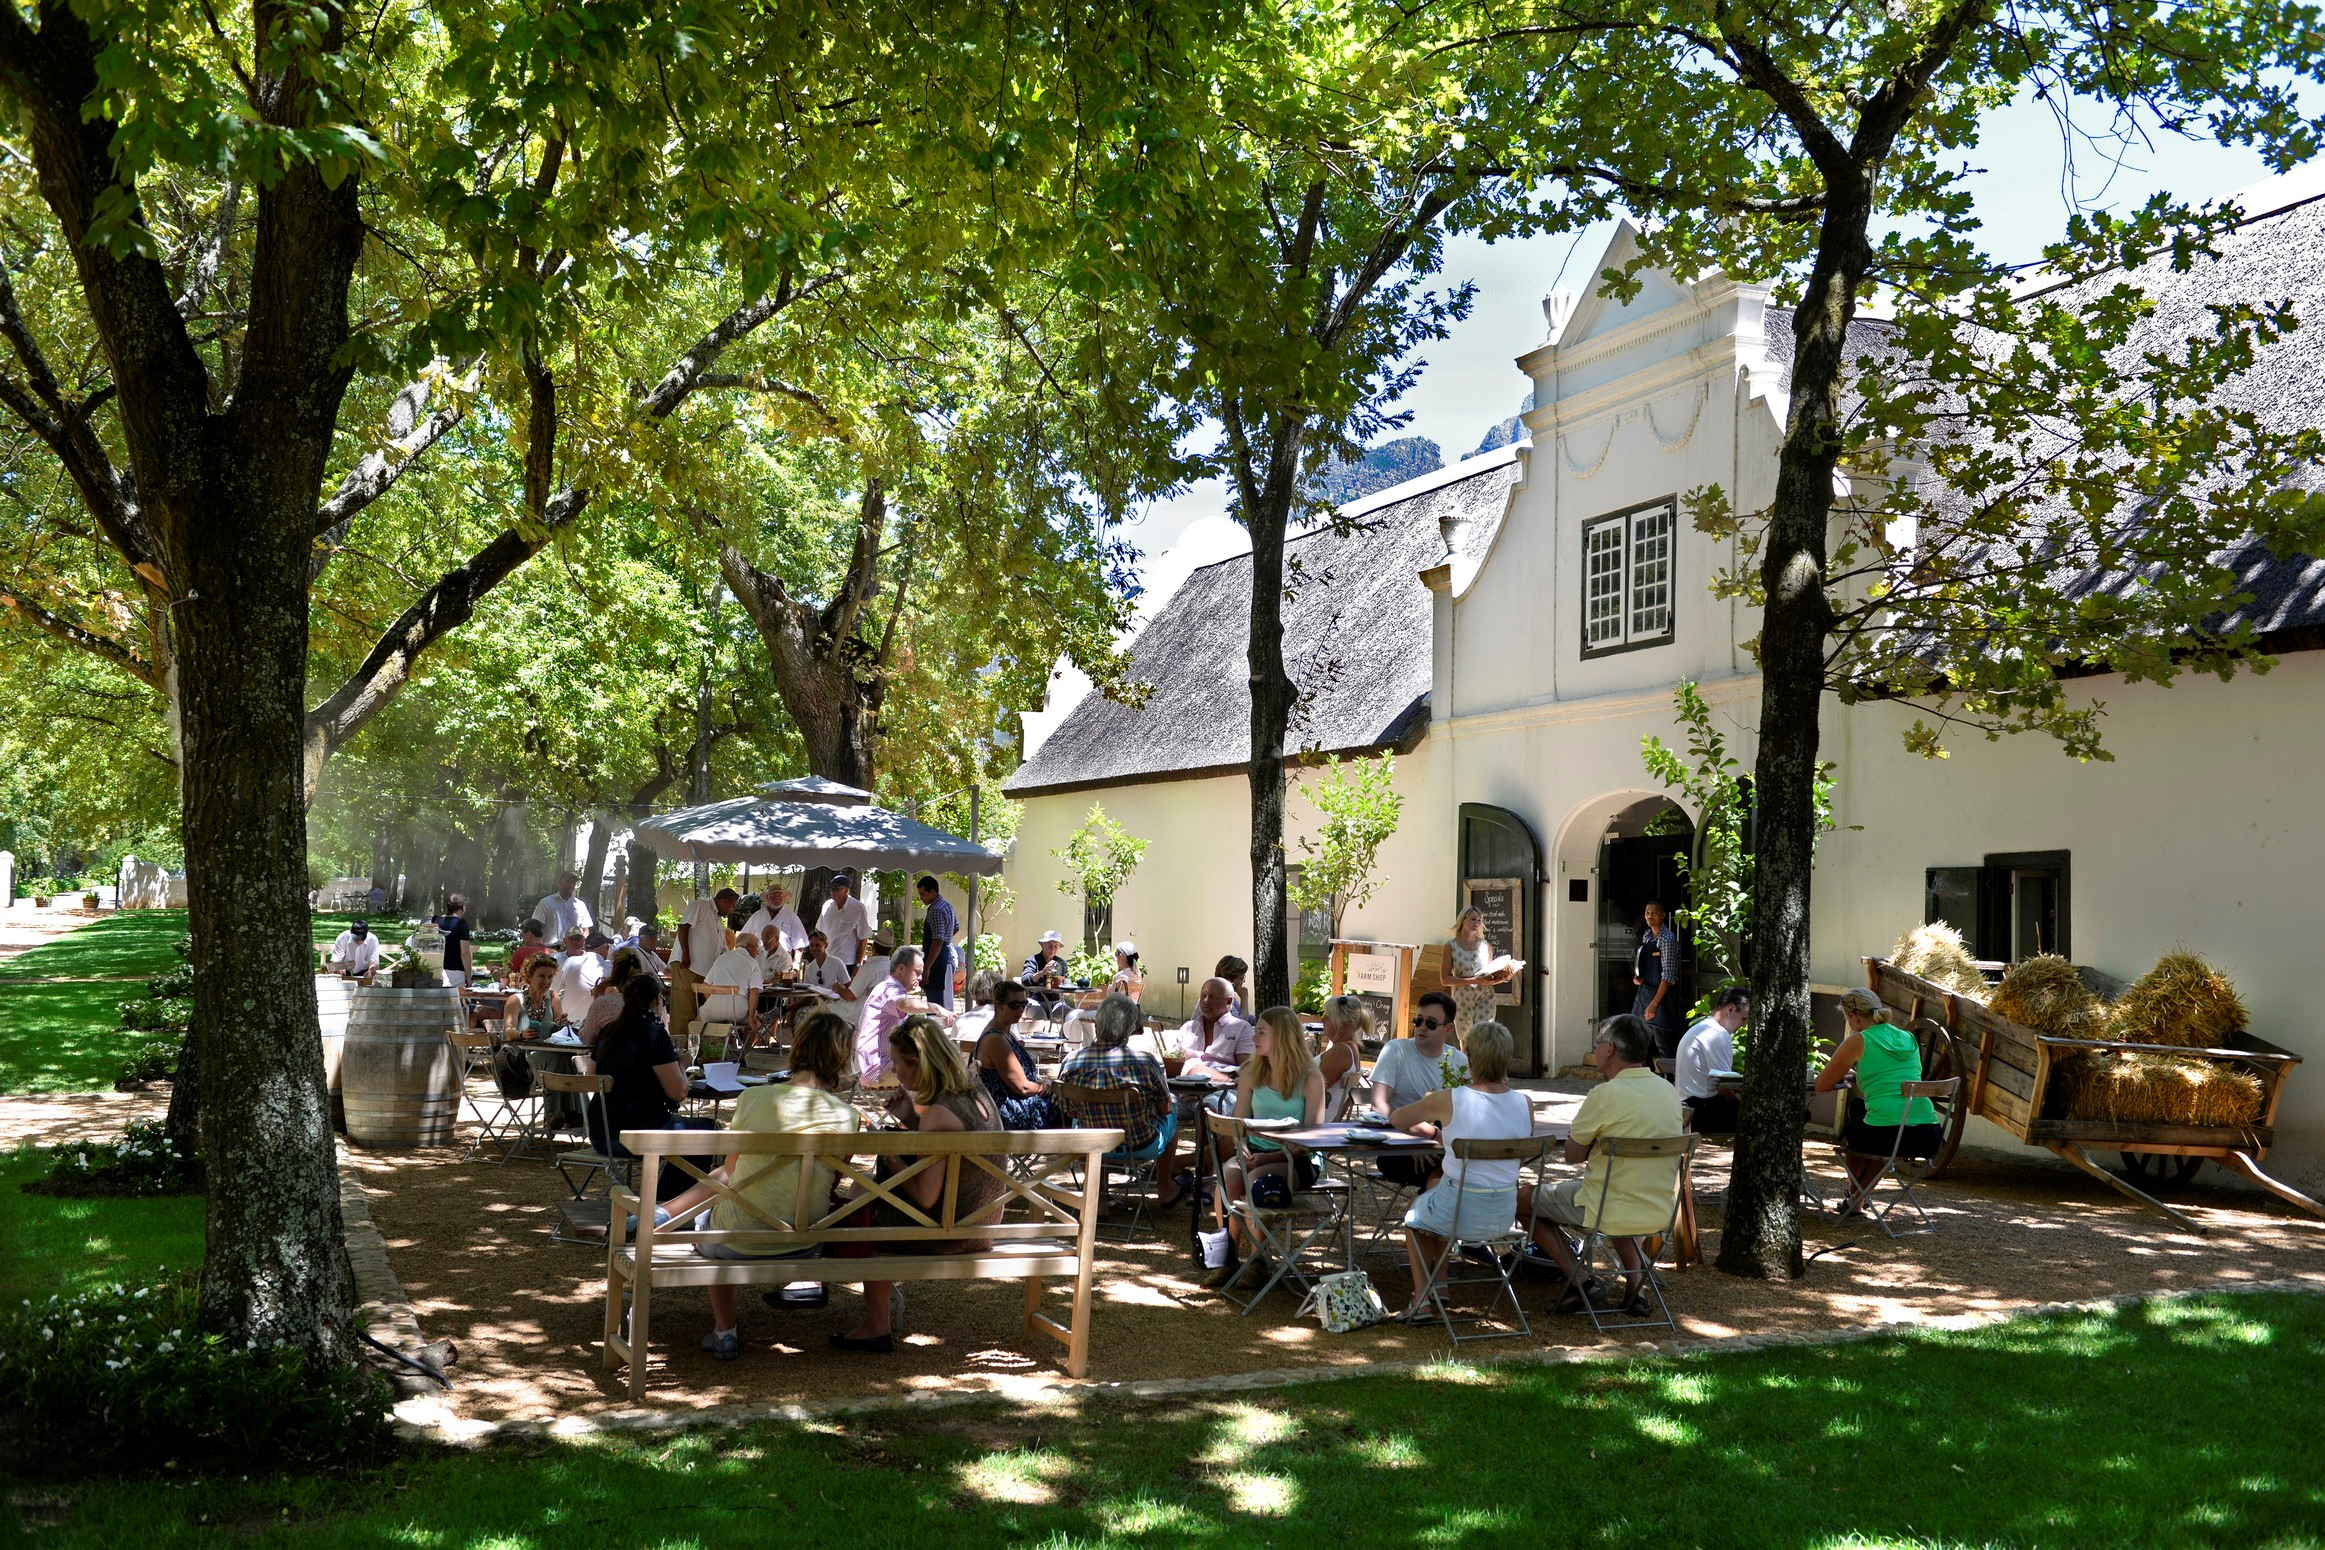 Boschendal Winefarm in Franschhoek South Africa - Luxury Wine Trails exclusive tours